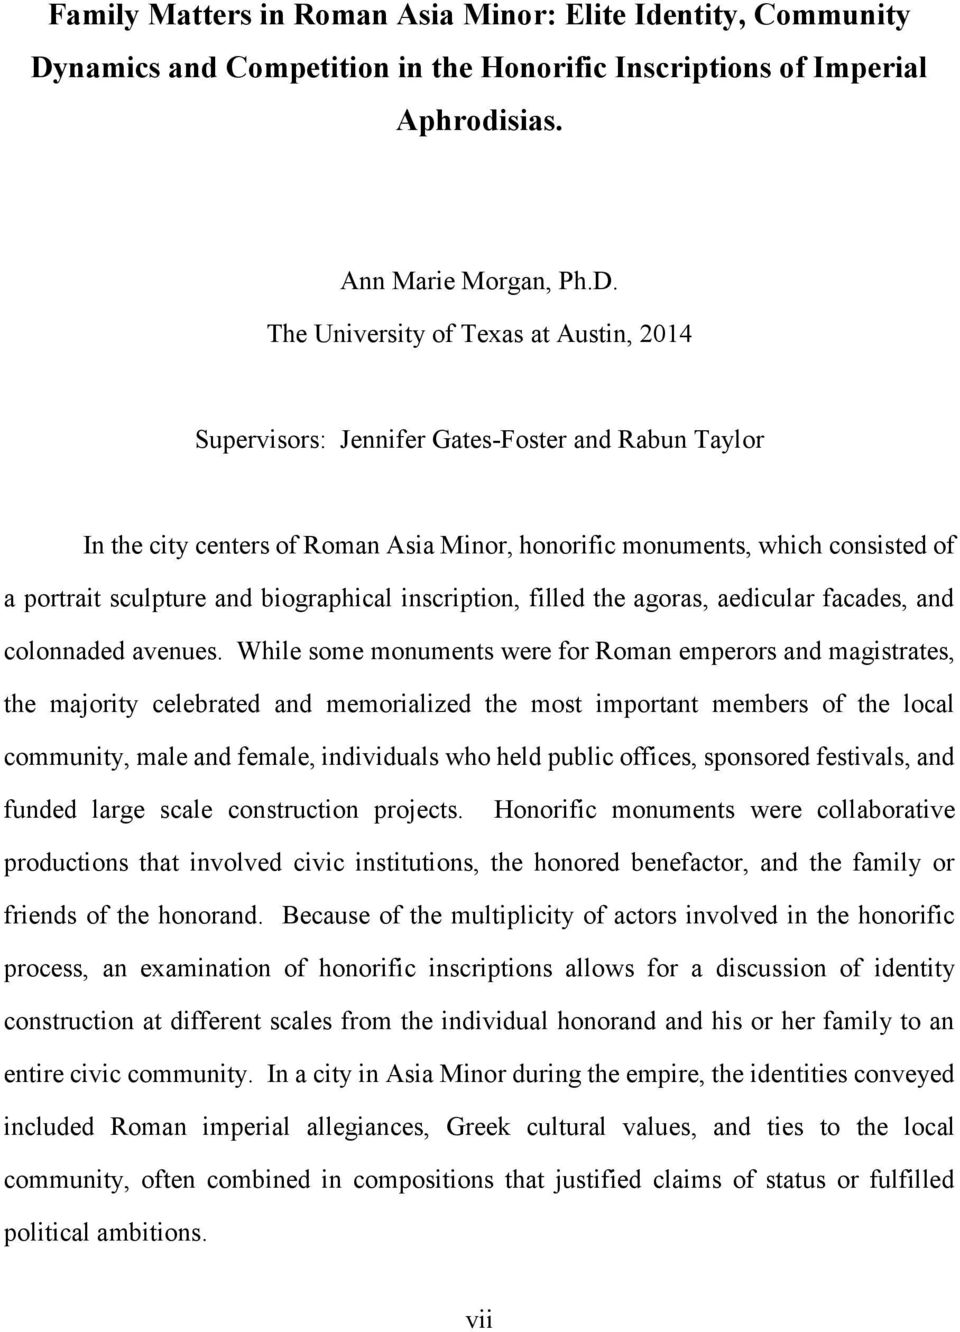 The University of Texas at Austin, 2014 Supervisors: Jennifer Gates-Foster and Rabun Taylor In the city centers of Roman Asia Minor, honorific monuments, which consisted of a portrait sculpture and